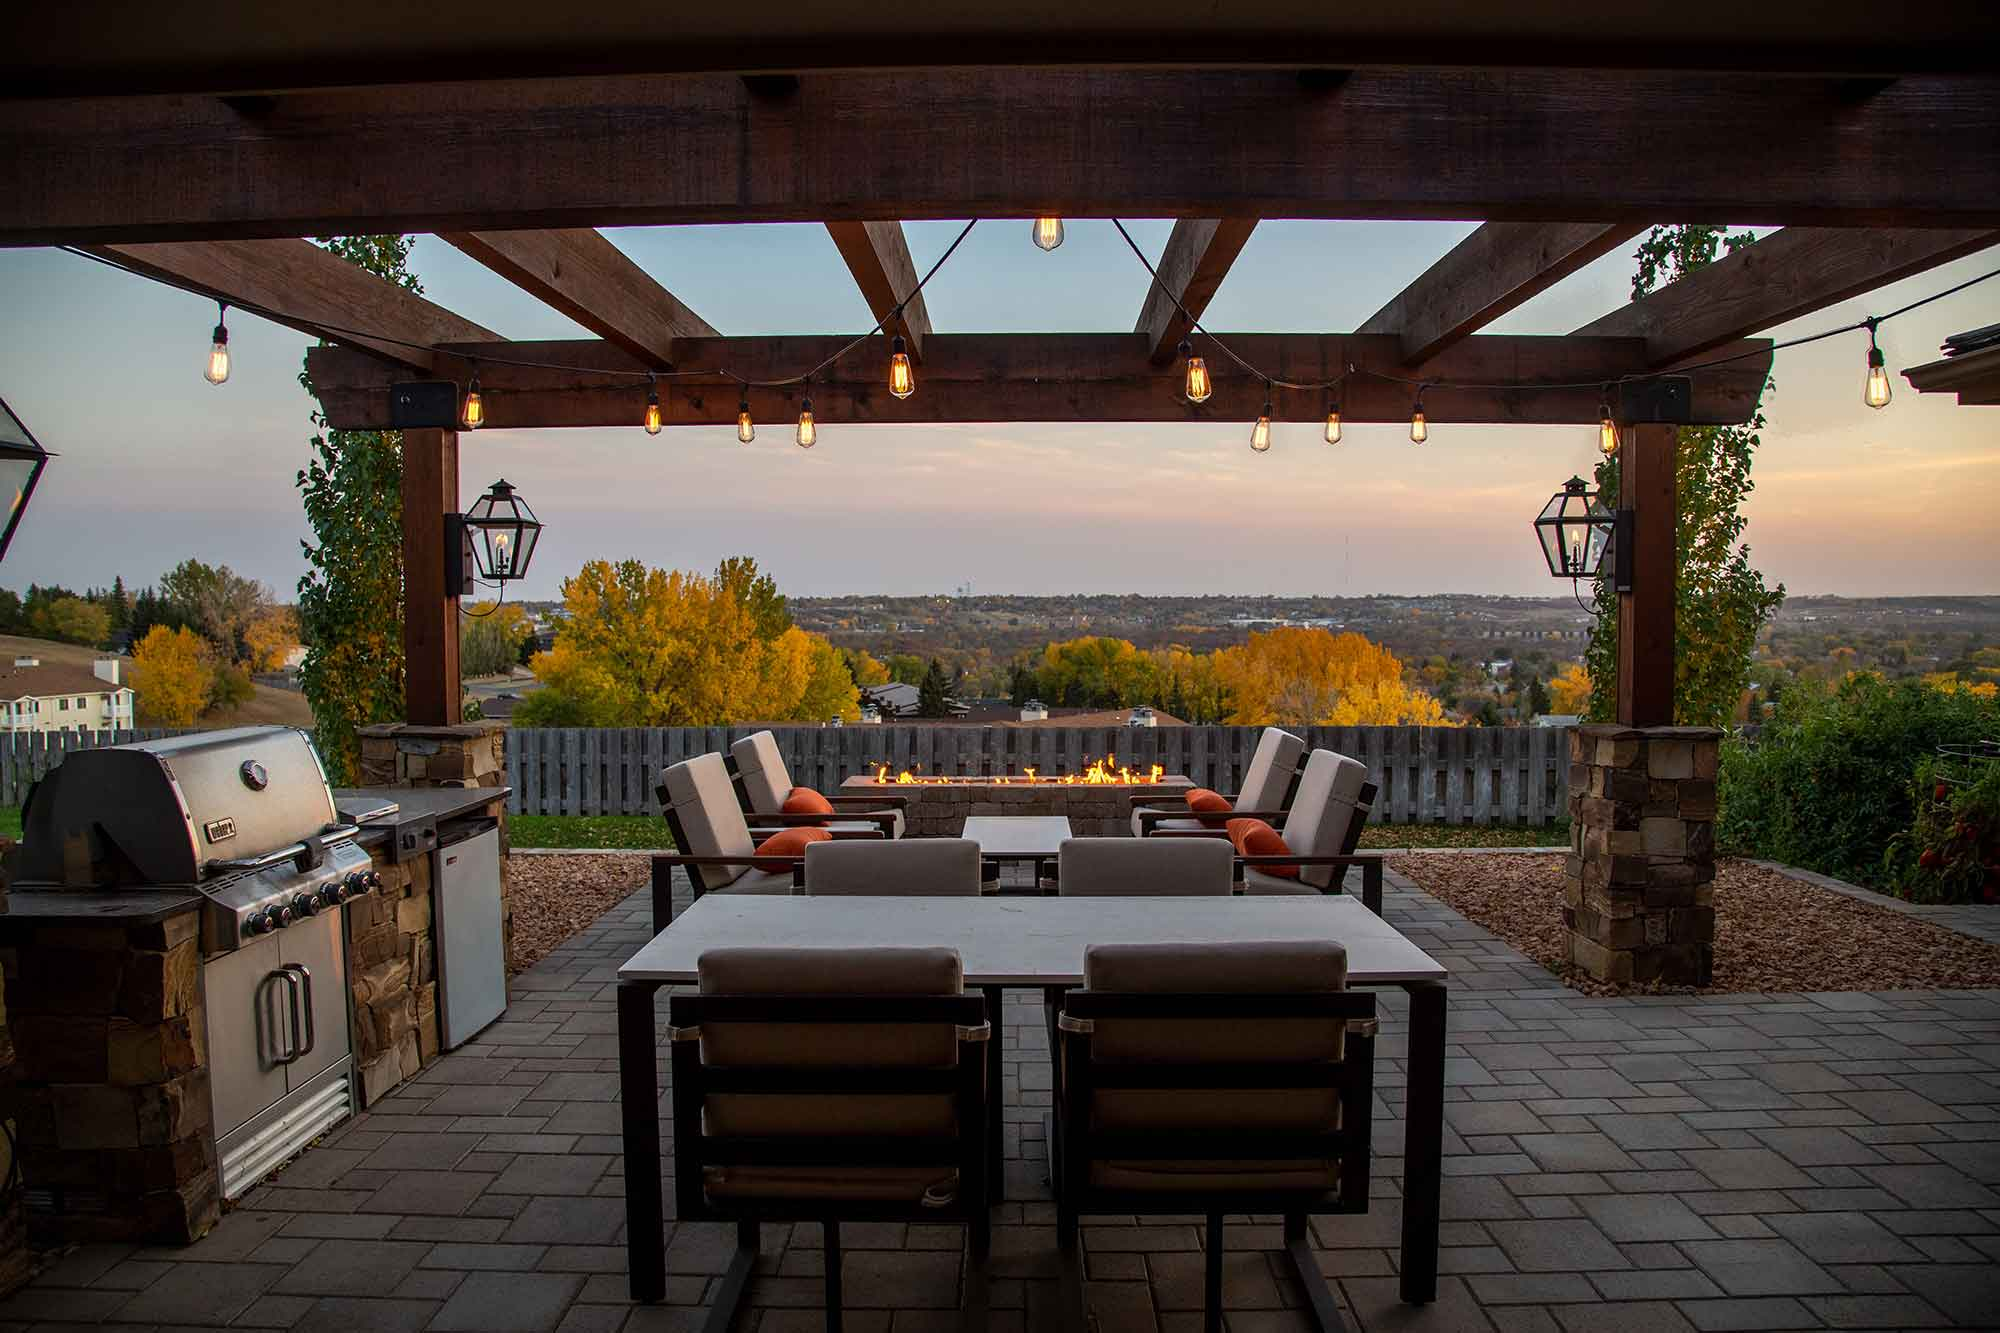 Outdoor patio at sunset